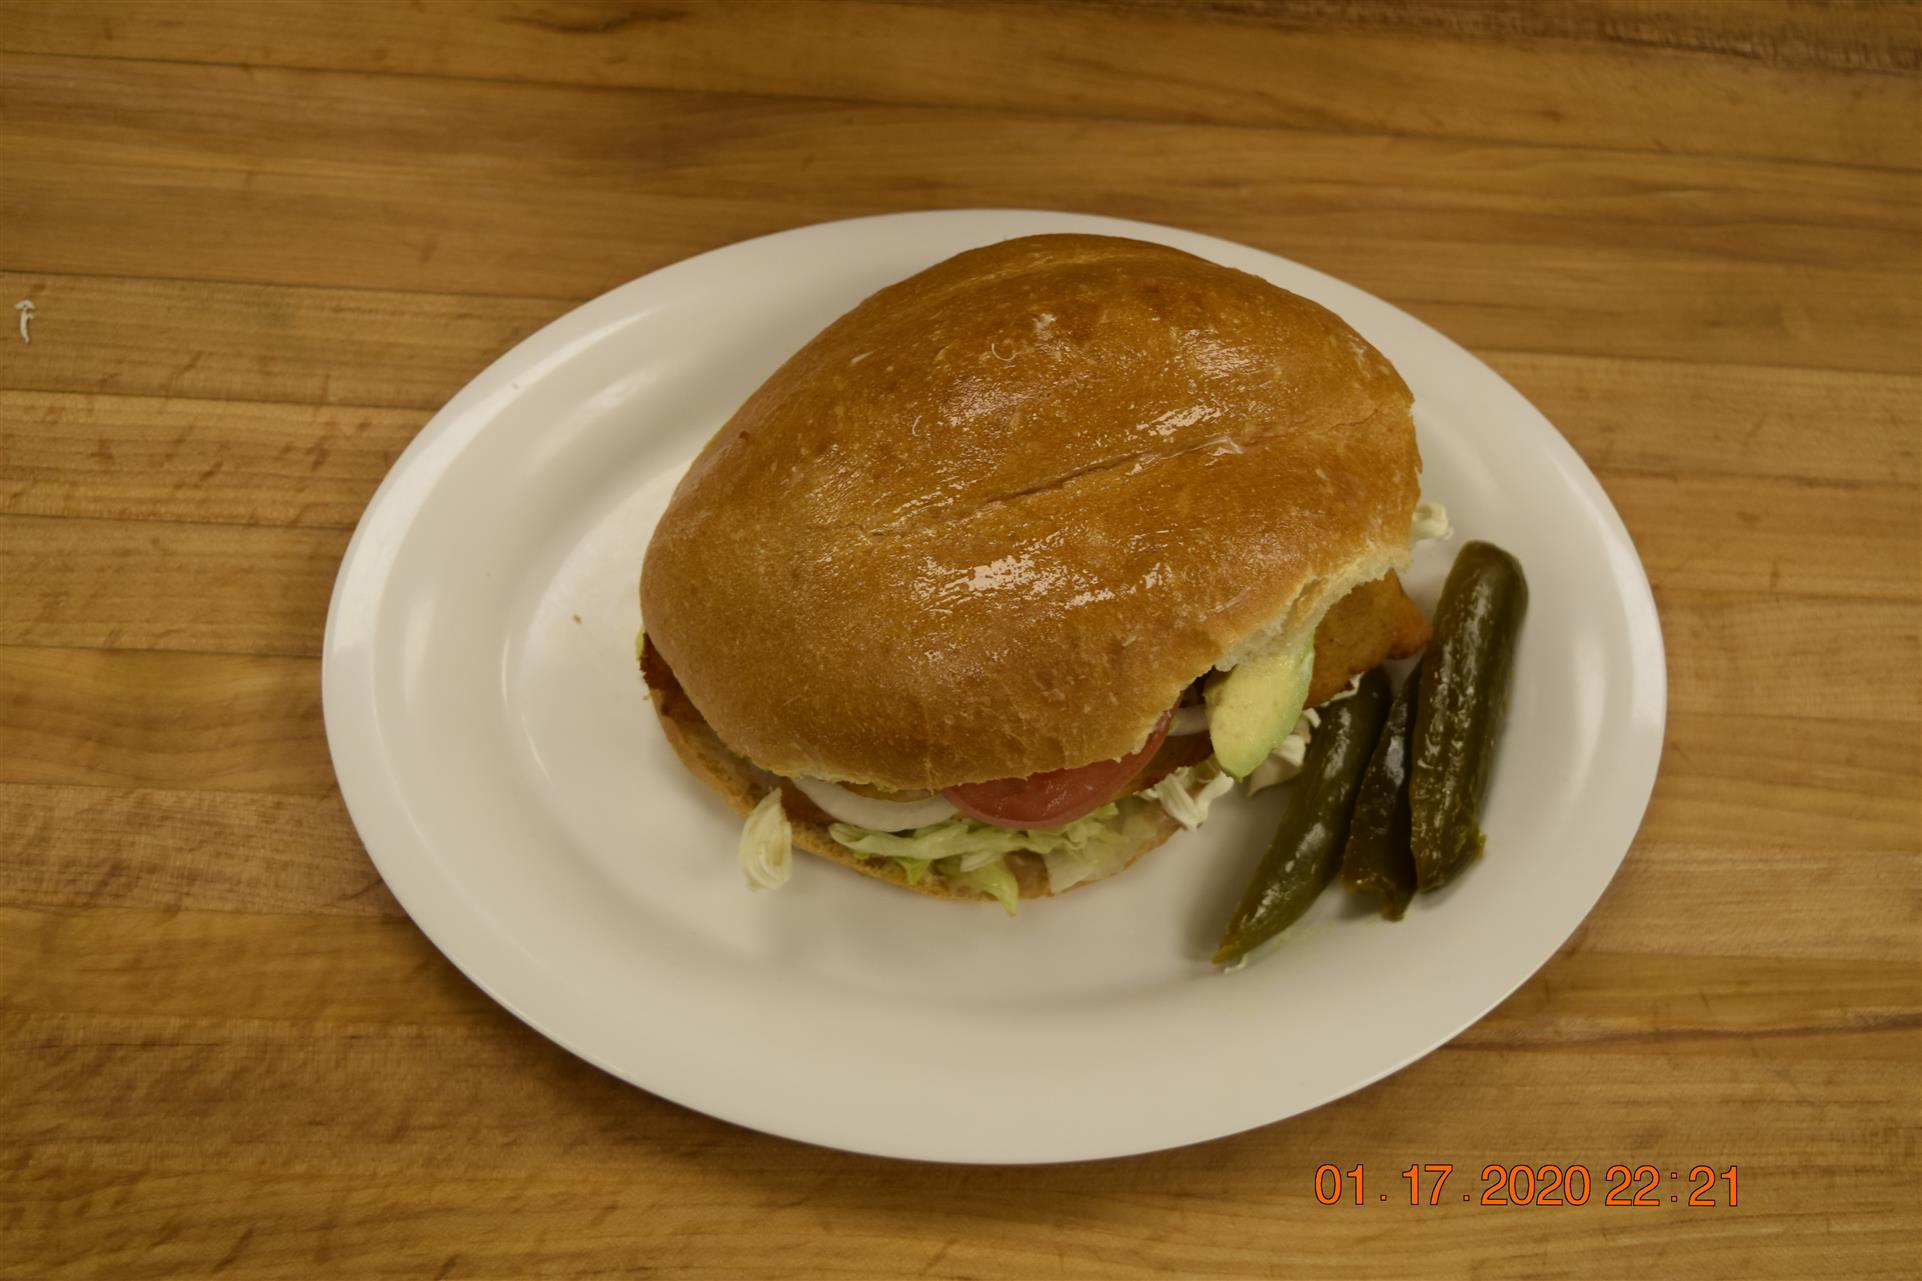 deli sandwich with side of pickles